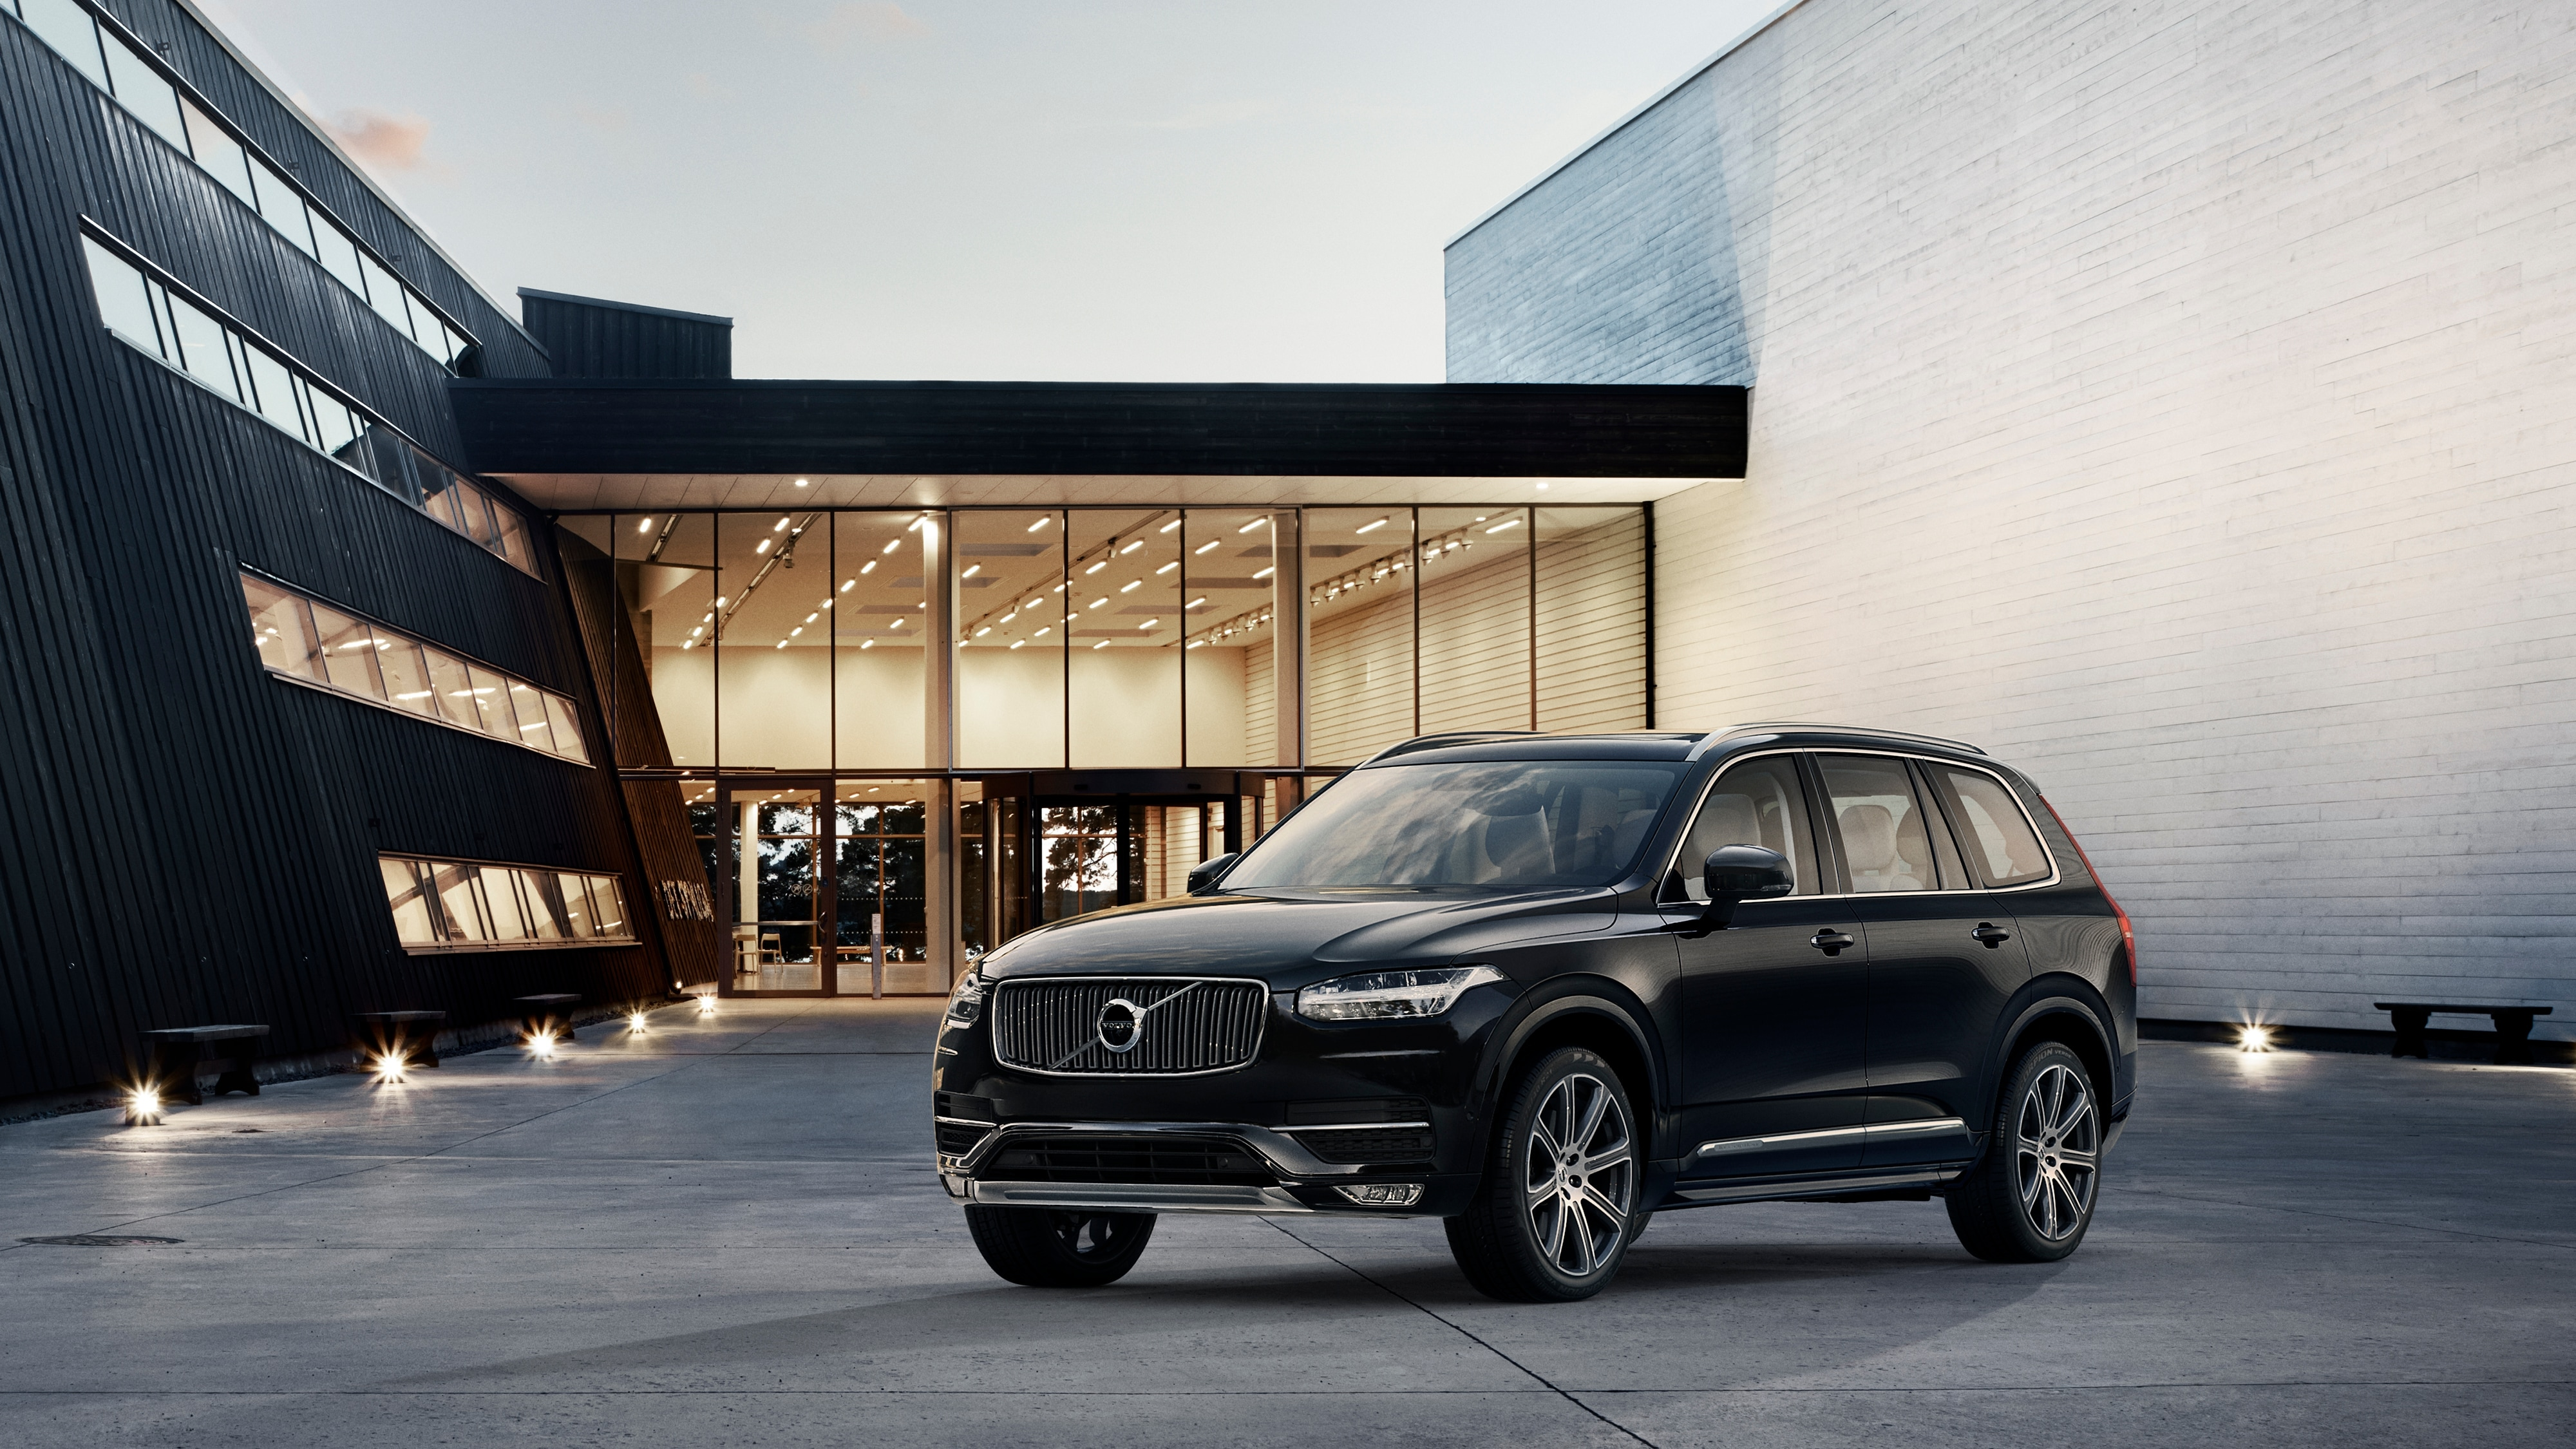 The Volvo XC90 Inscription trim parked in front of a modern building